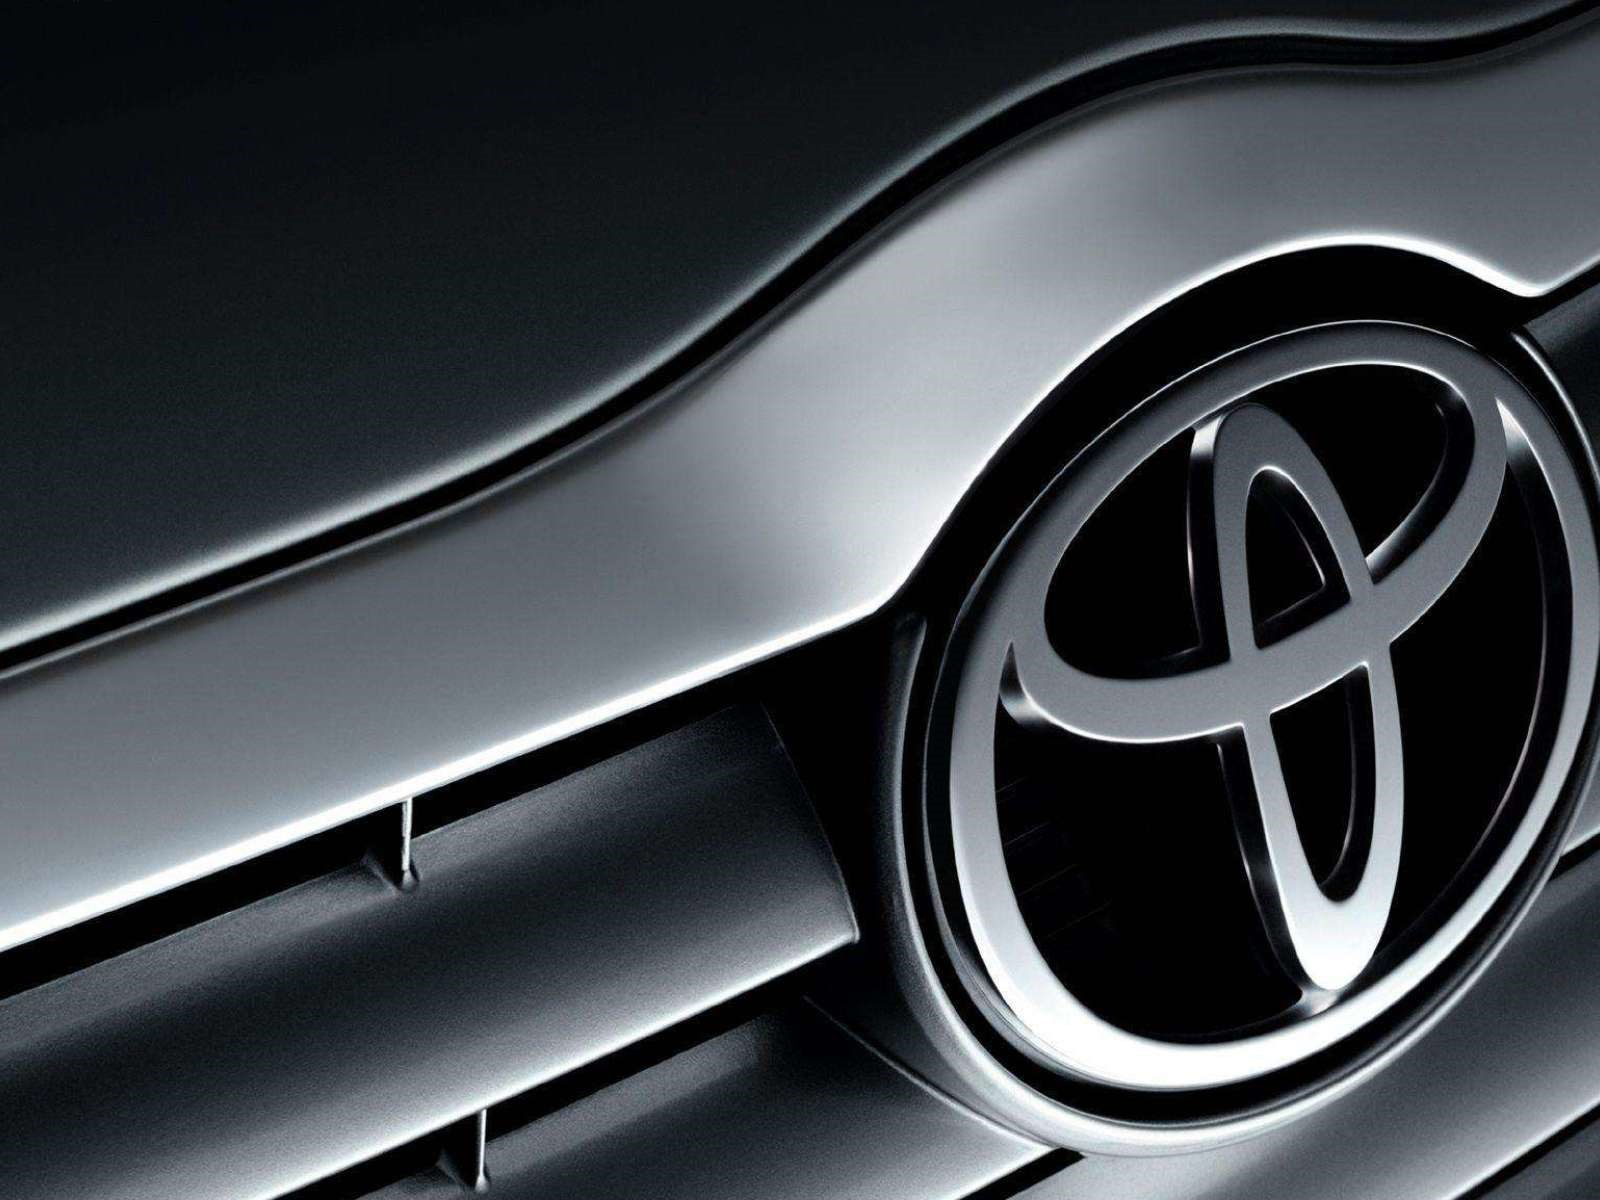 Toyota 1080p Wallpapers